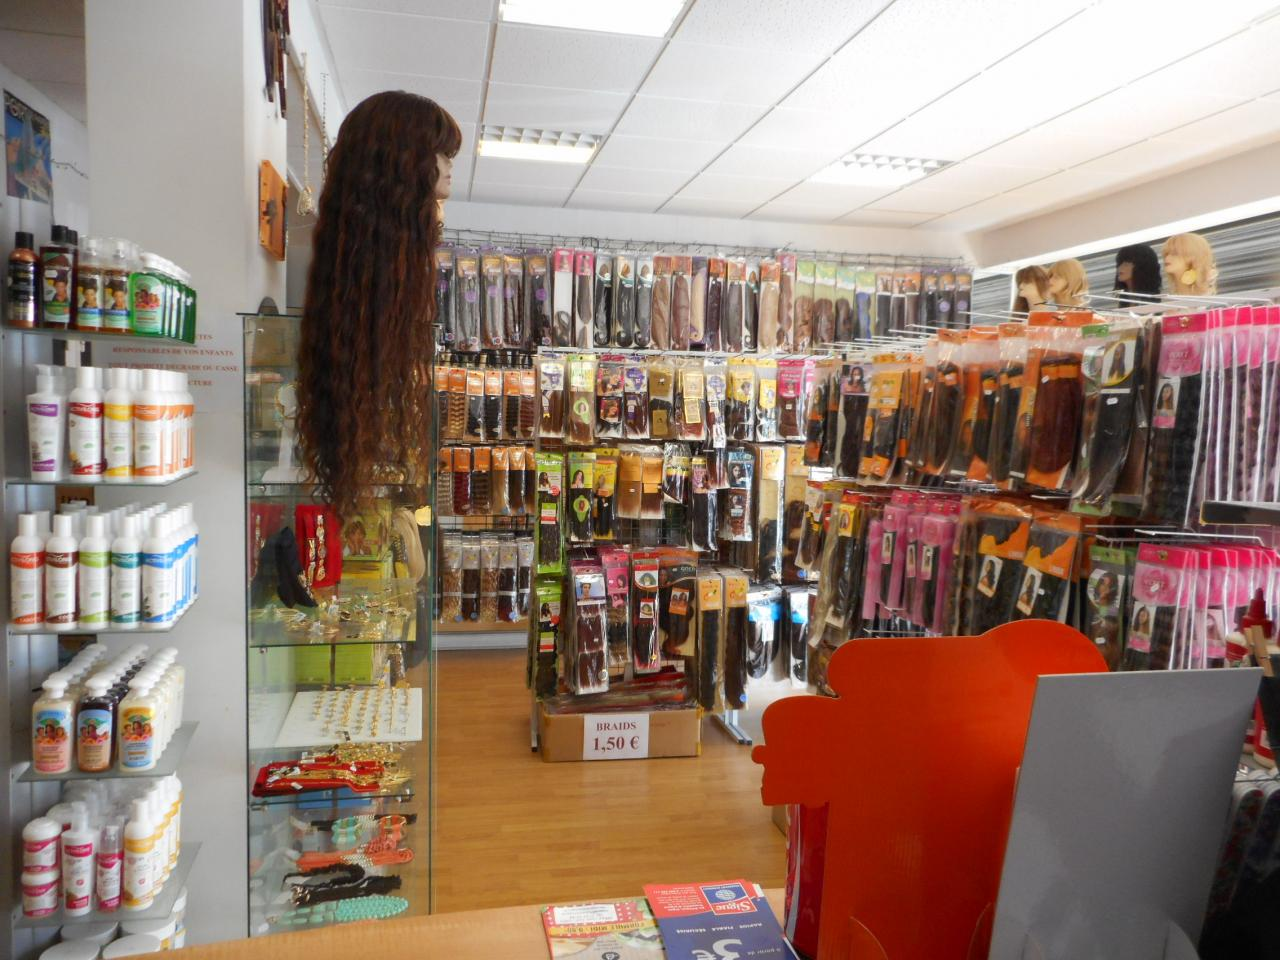 Salon De Coiffure Dreadlocks Photos Salon De Coiffure Afro Rastafari Tissages Perruques